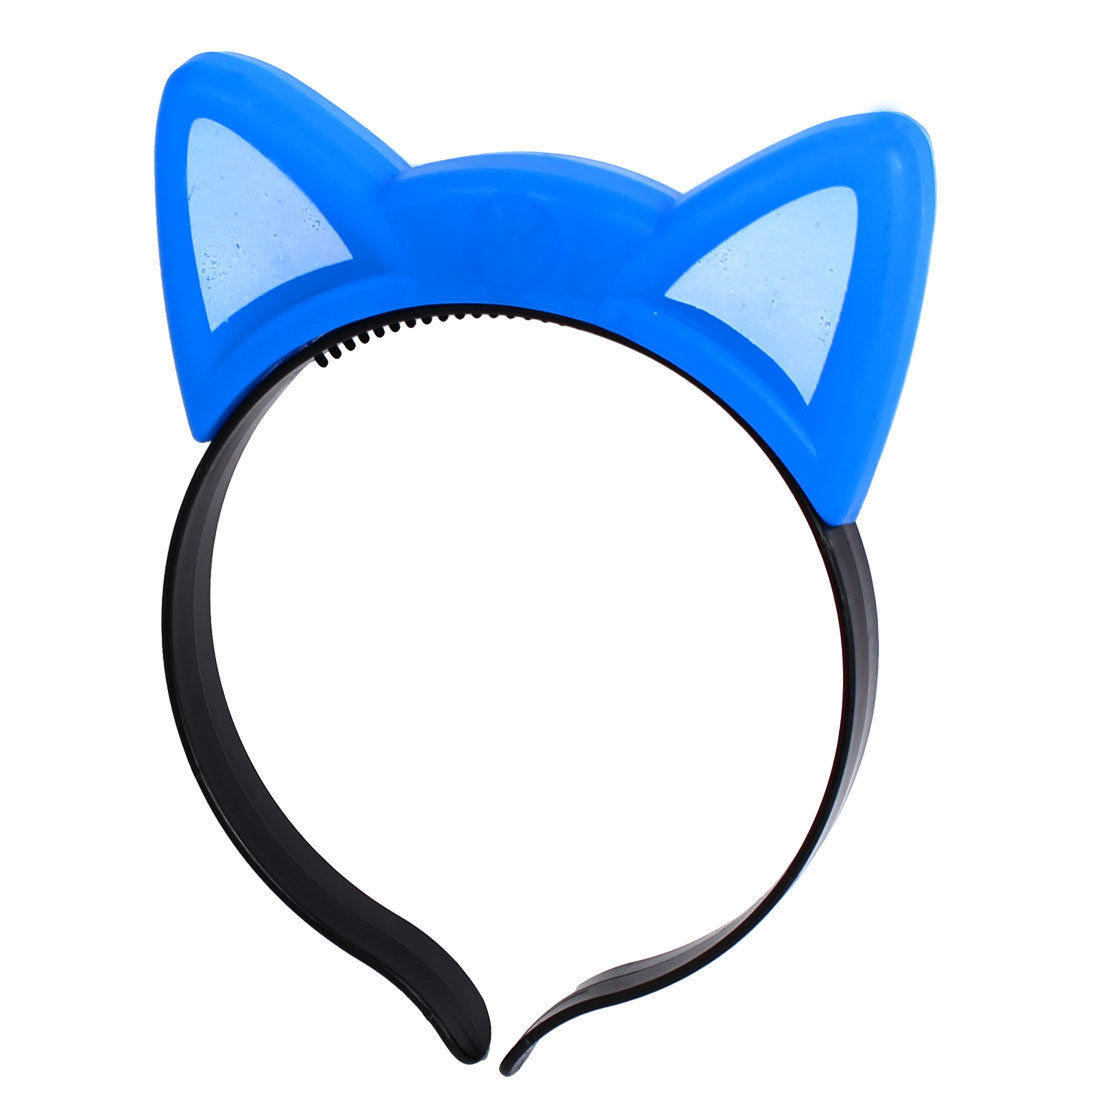 Party Flash LED Cat Ear Decor Light Blinking Hair Band Hairband Headband Blue